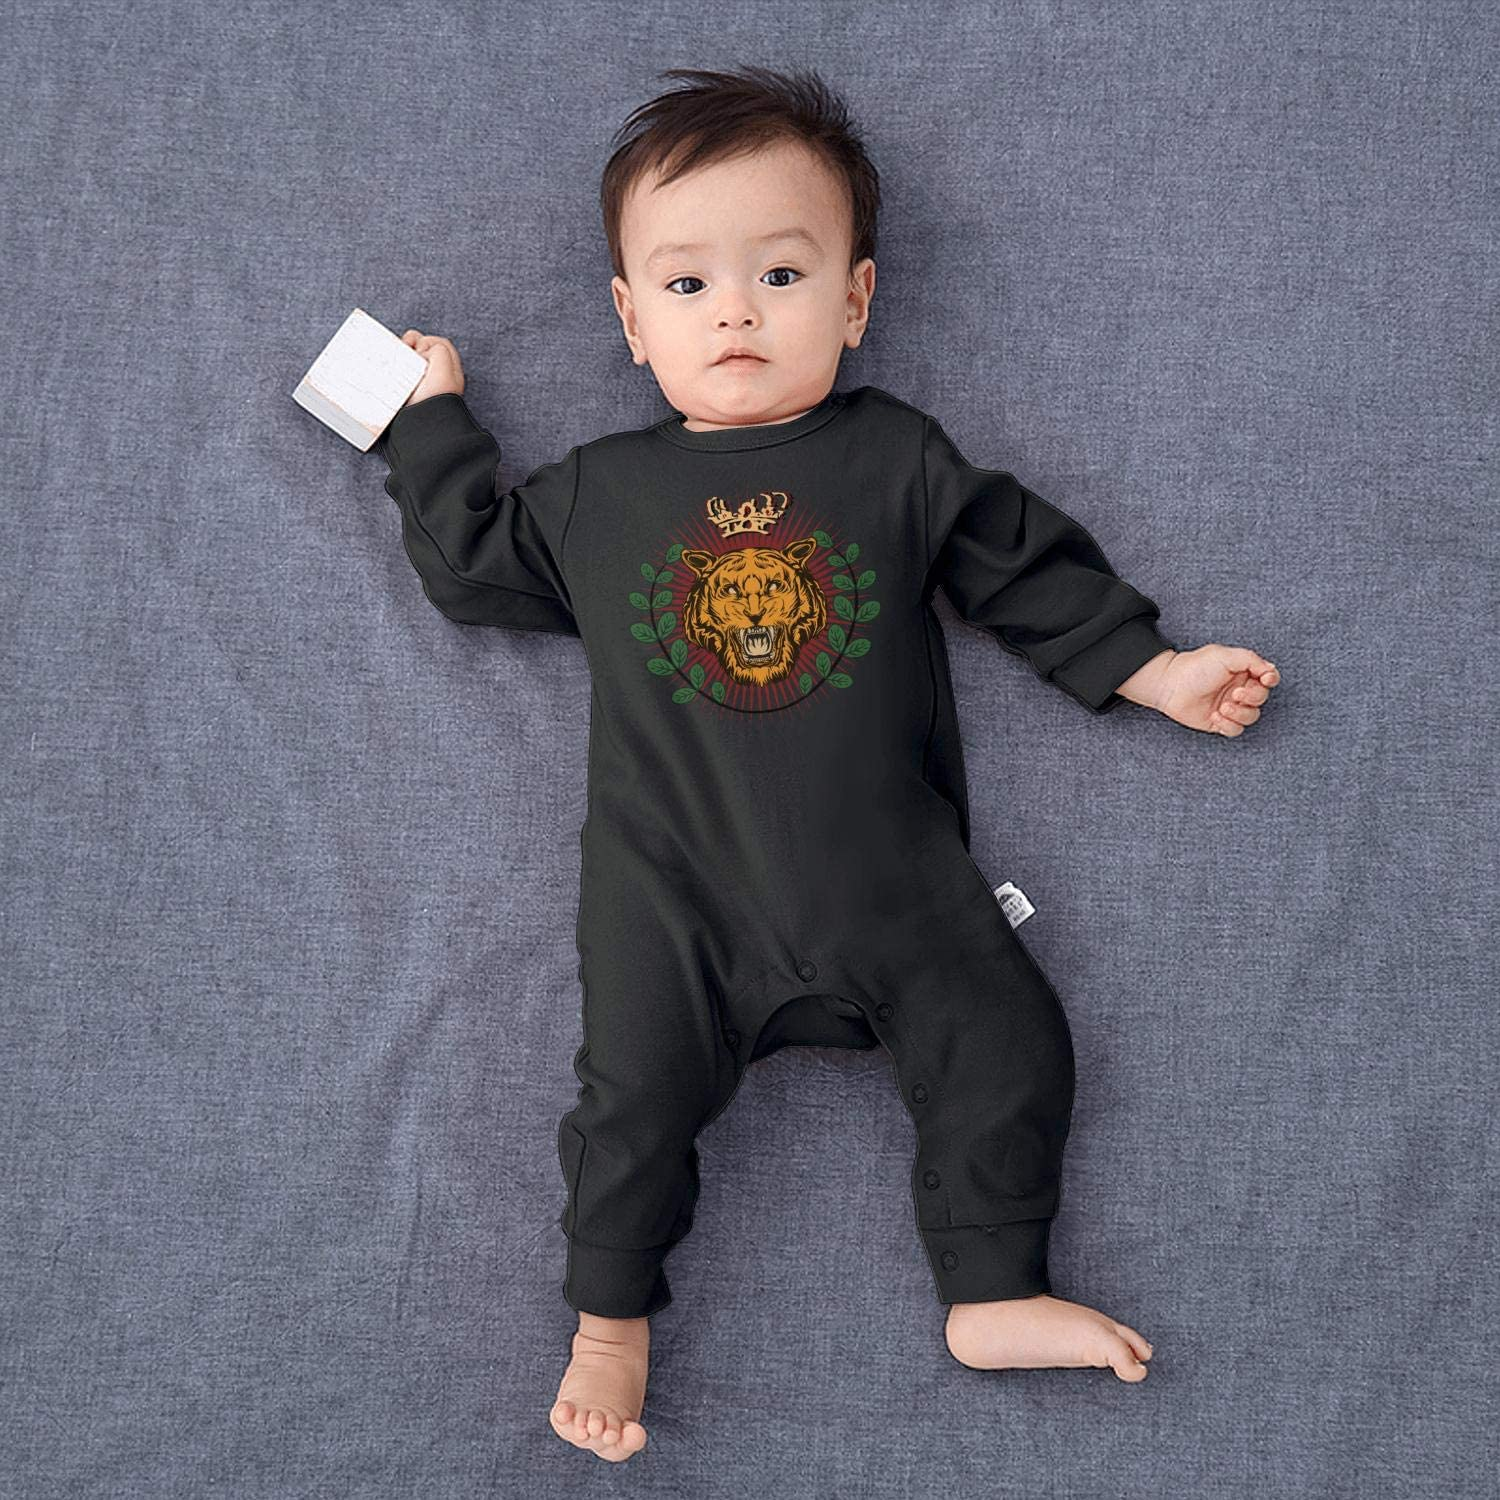 Technicolor King Lion Printted Baby Crawling Suit Lone-Sleeved Romper Bodysuit